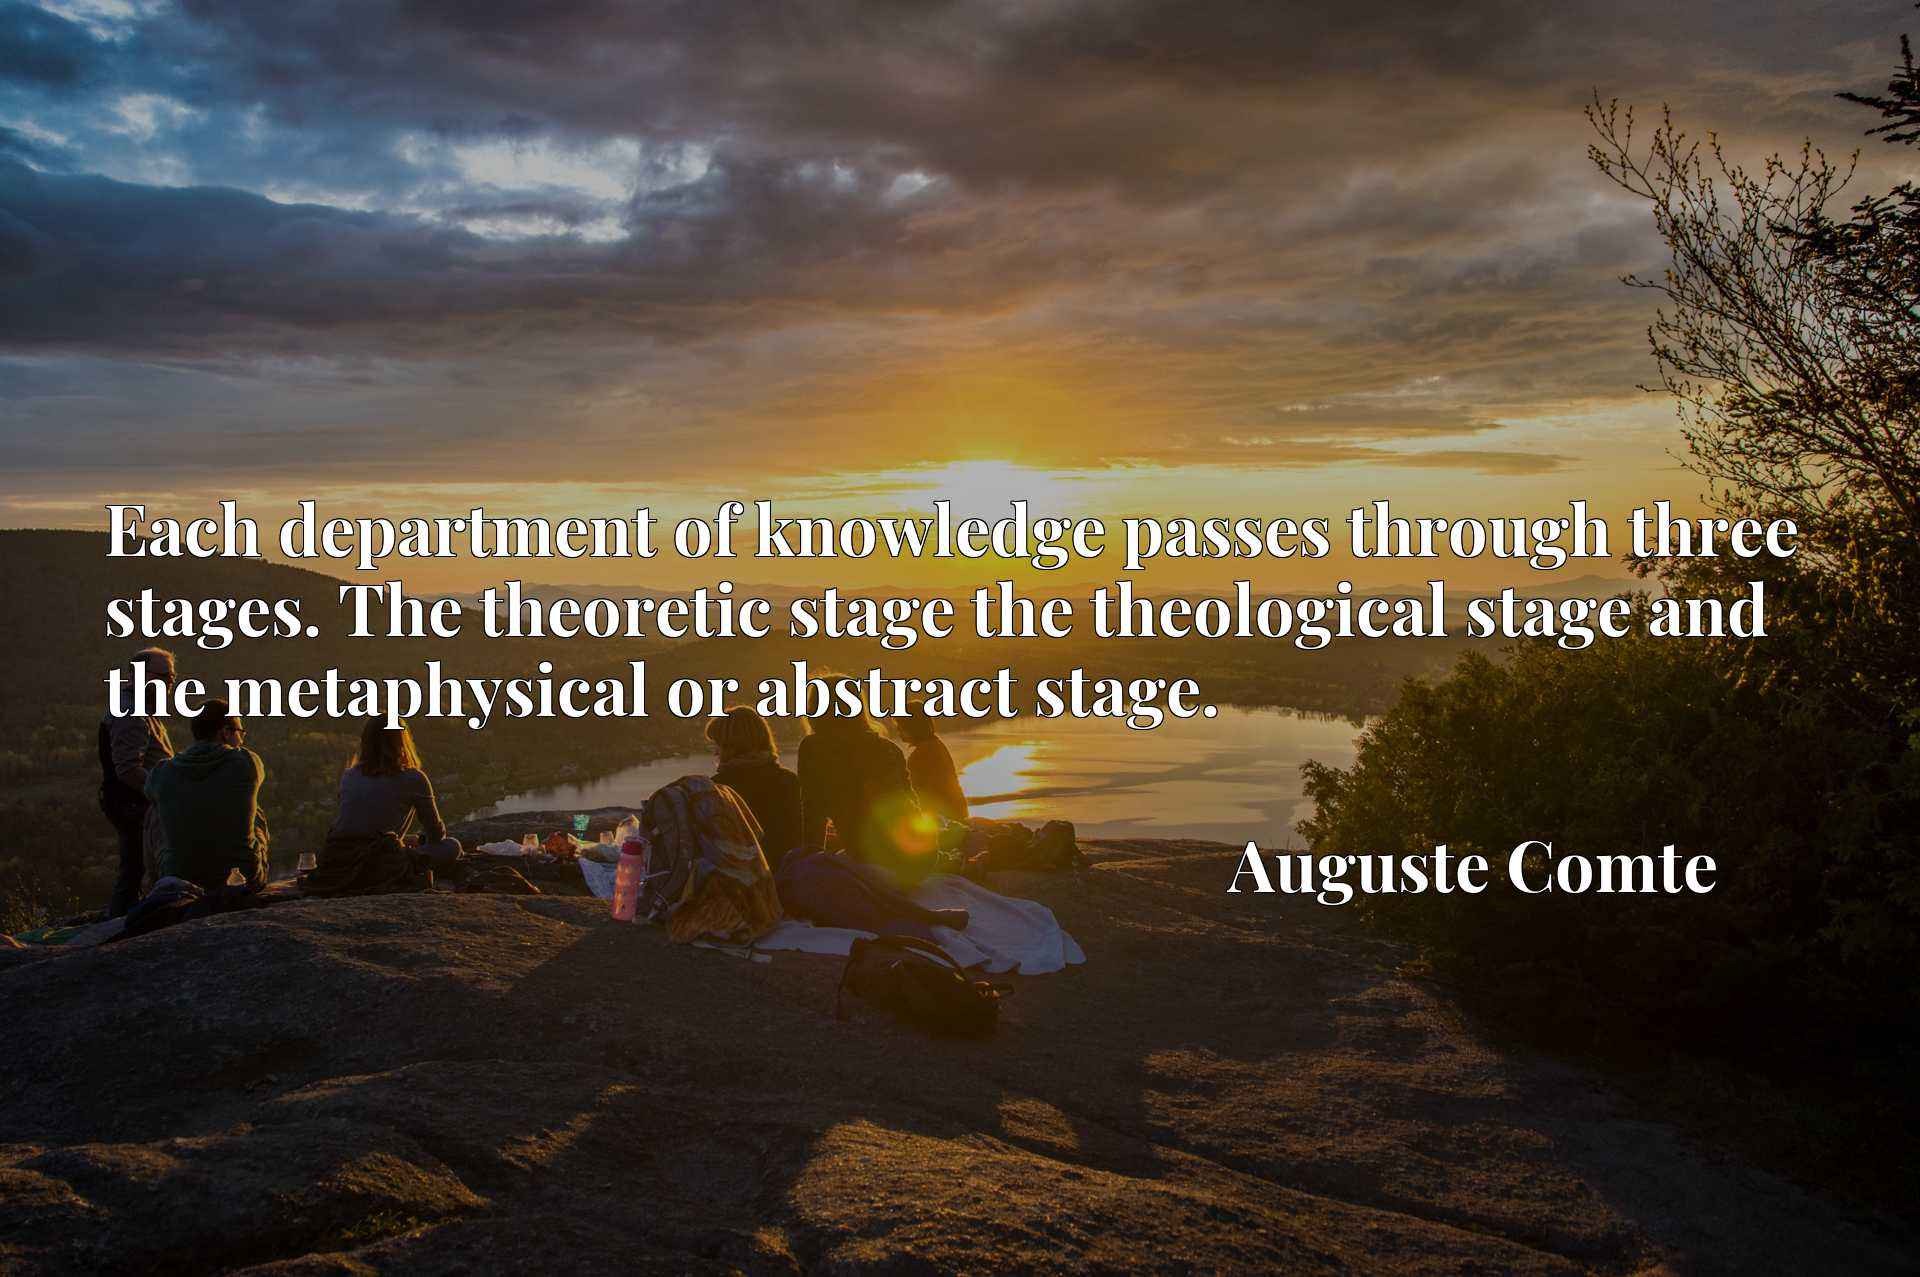 Quote Picture :Each department of knowledge passes through three stages. The theoretic stage the theological stage and the metaphysical or abstract stage.